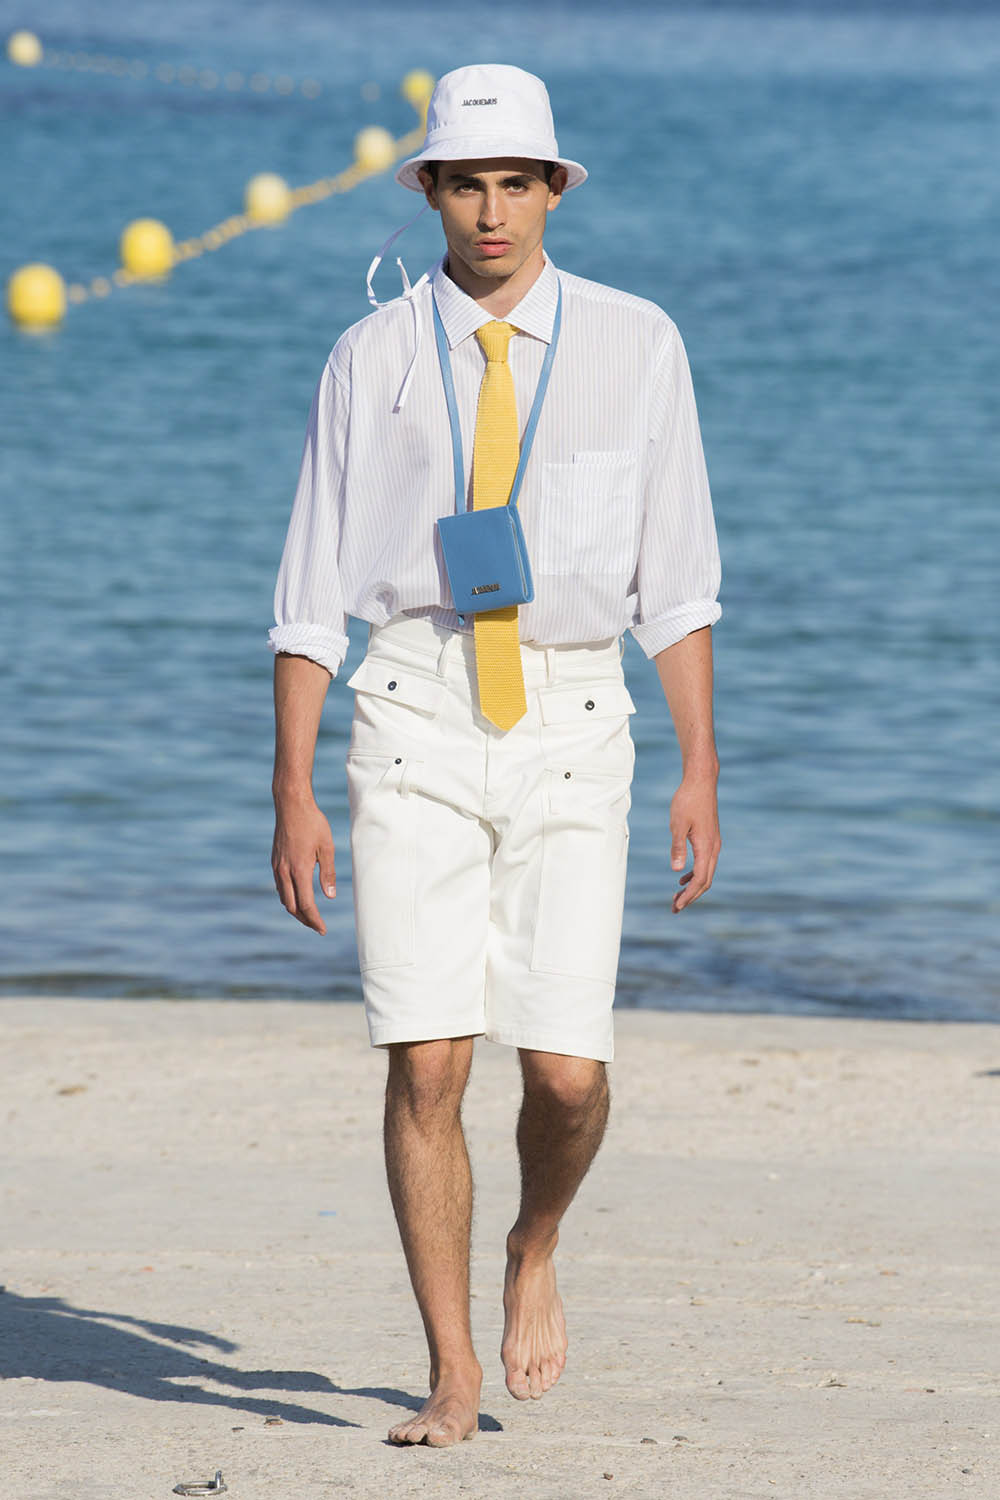 Jacquemus Paris Fashion Week Men's SS19 - Sagaboi - Look 28